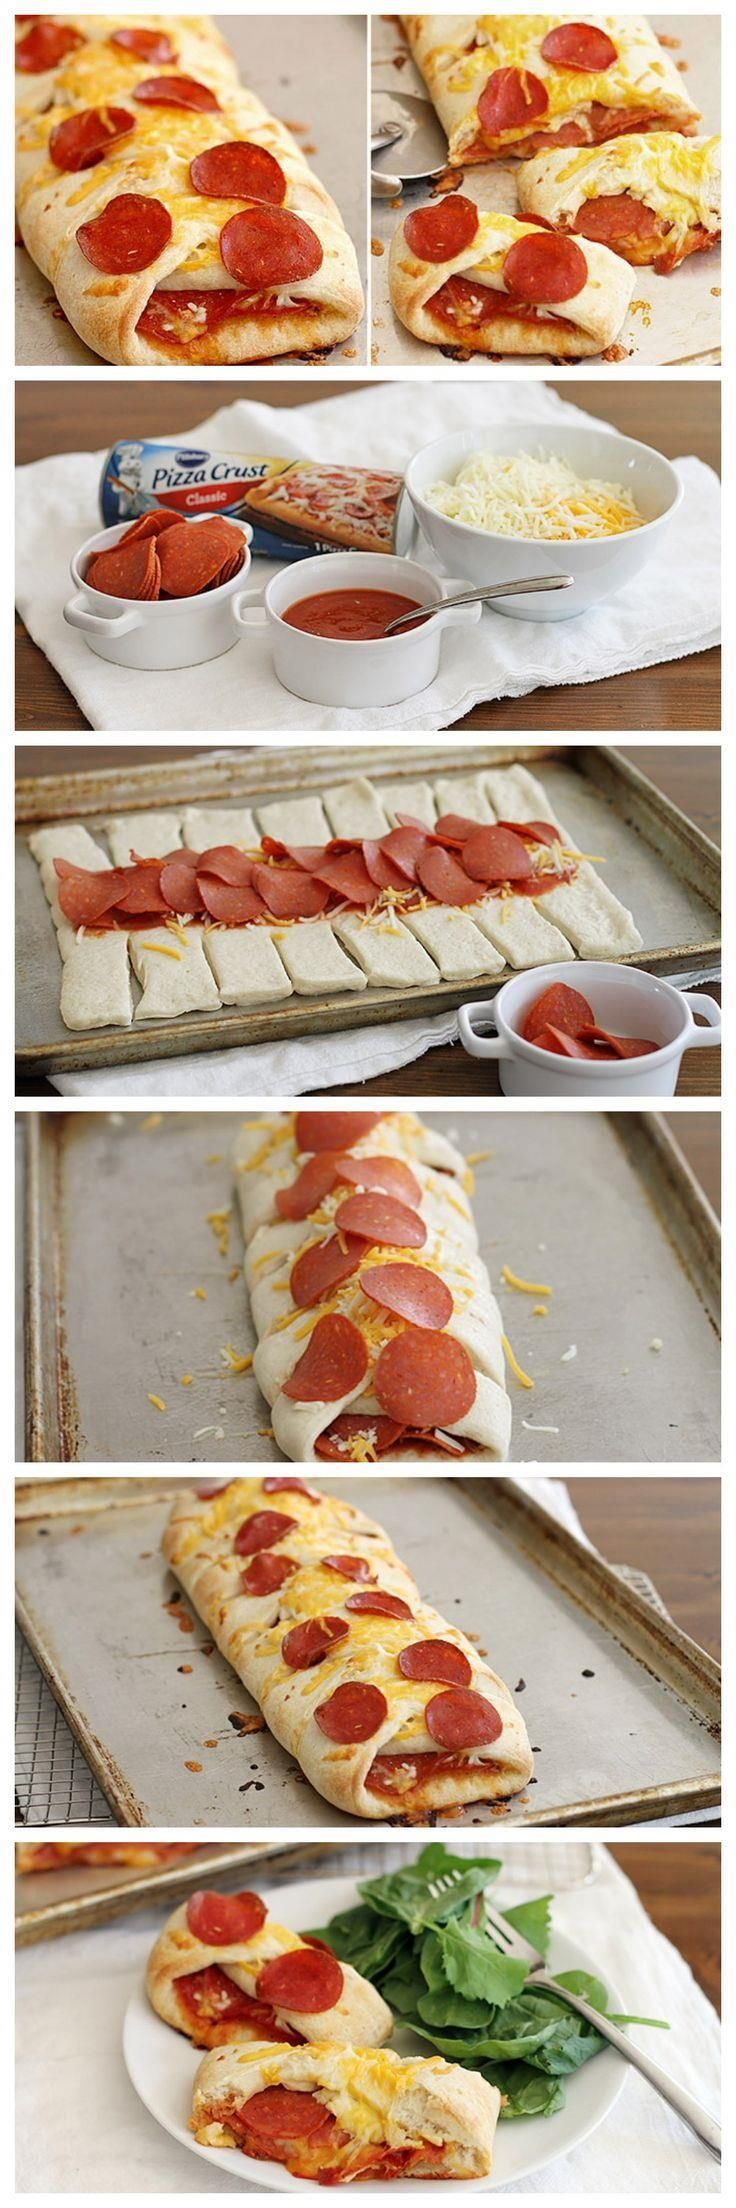 Pepperoni Pizza Braid    I love food. I love making it and I love eating it. But more than anything else I love how it brings people together. There is nothing like breaking bread with friends and family. They are the most special times in life. That's why I like food and recipes – and people! – that are […]  Continue reading...    The post  Pepperoni Pizza Braid  appeared first on  Electric Moondrops .